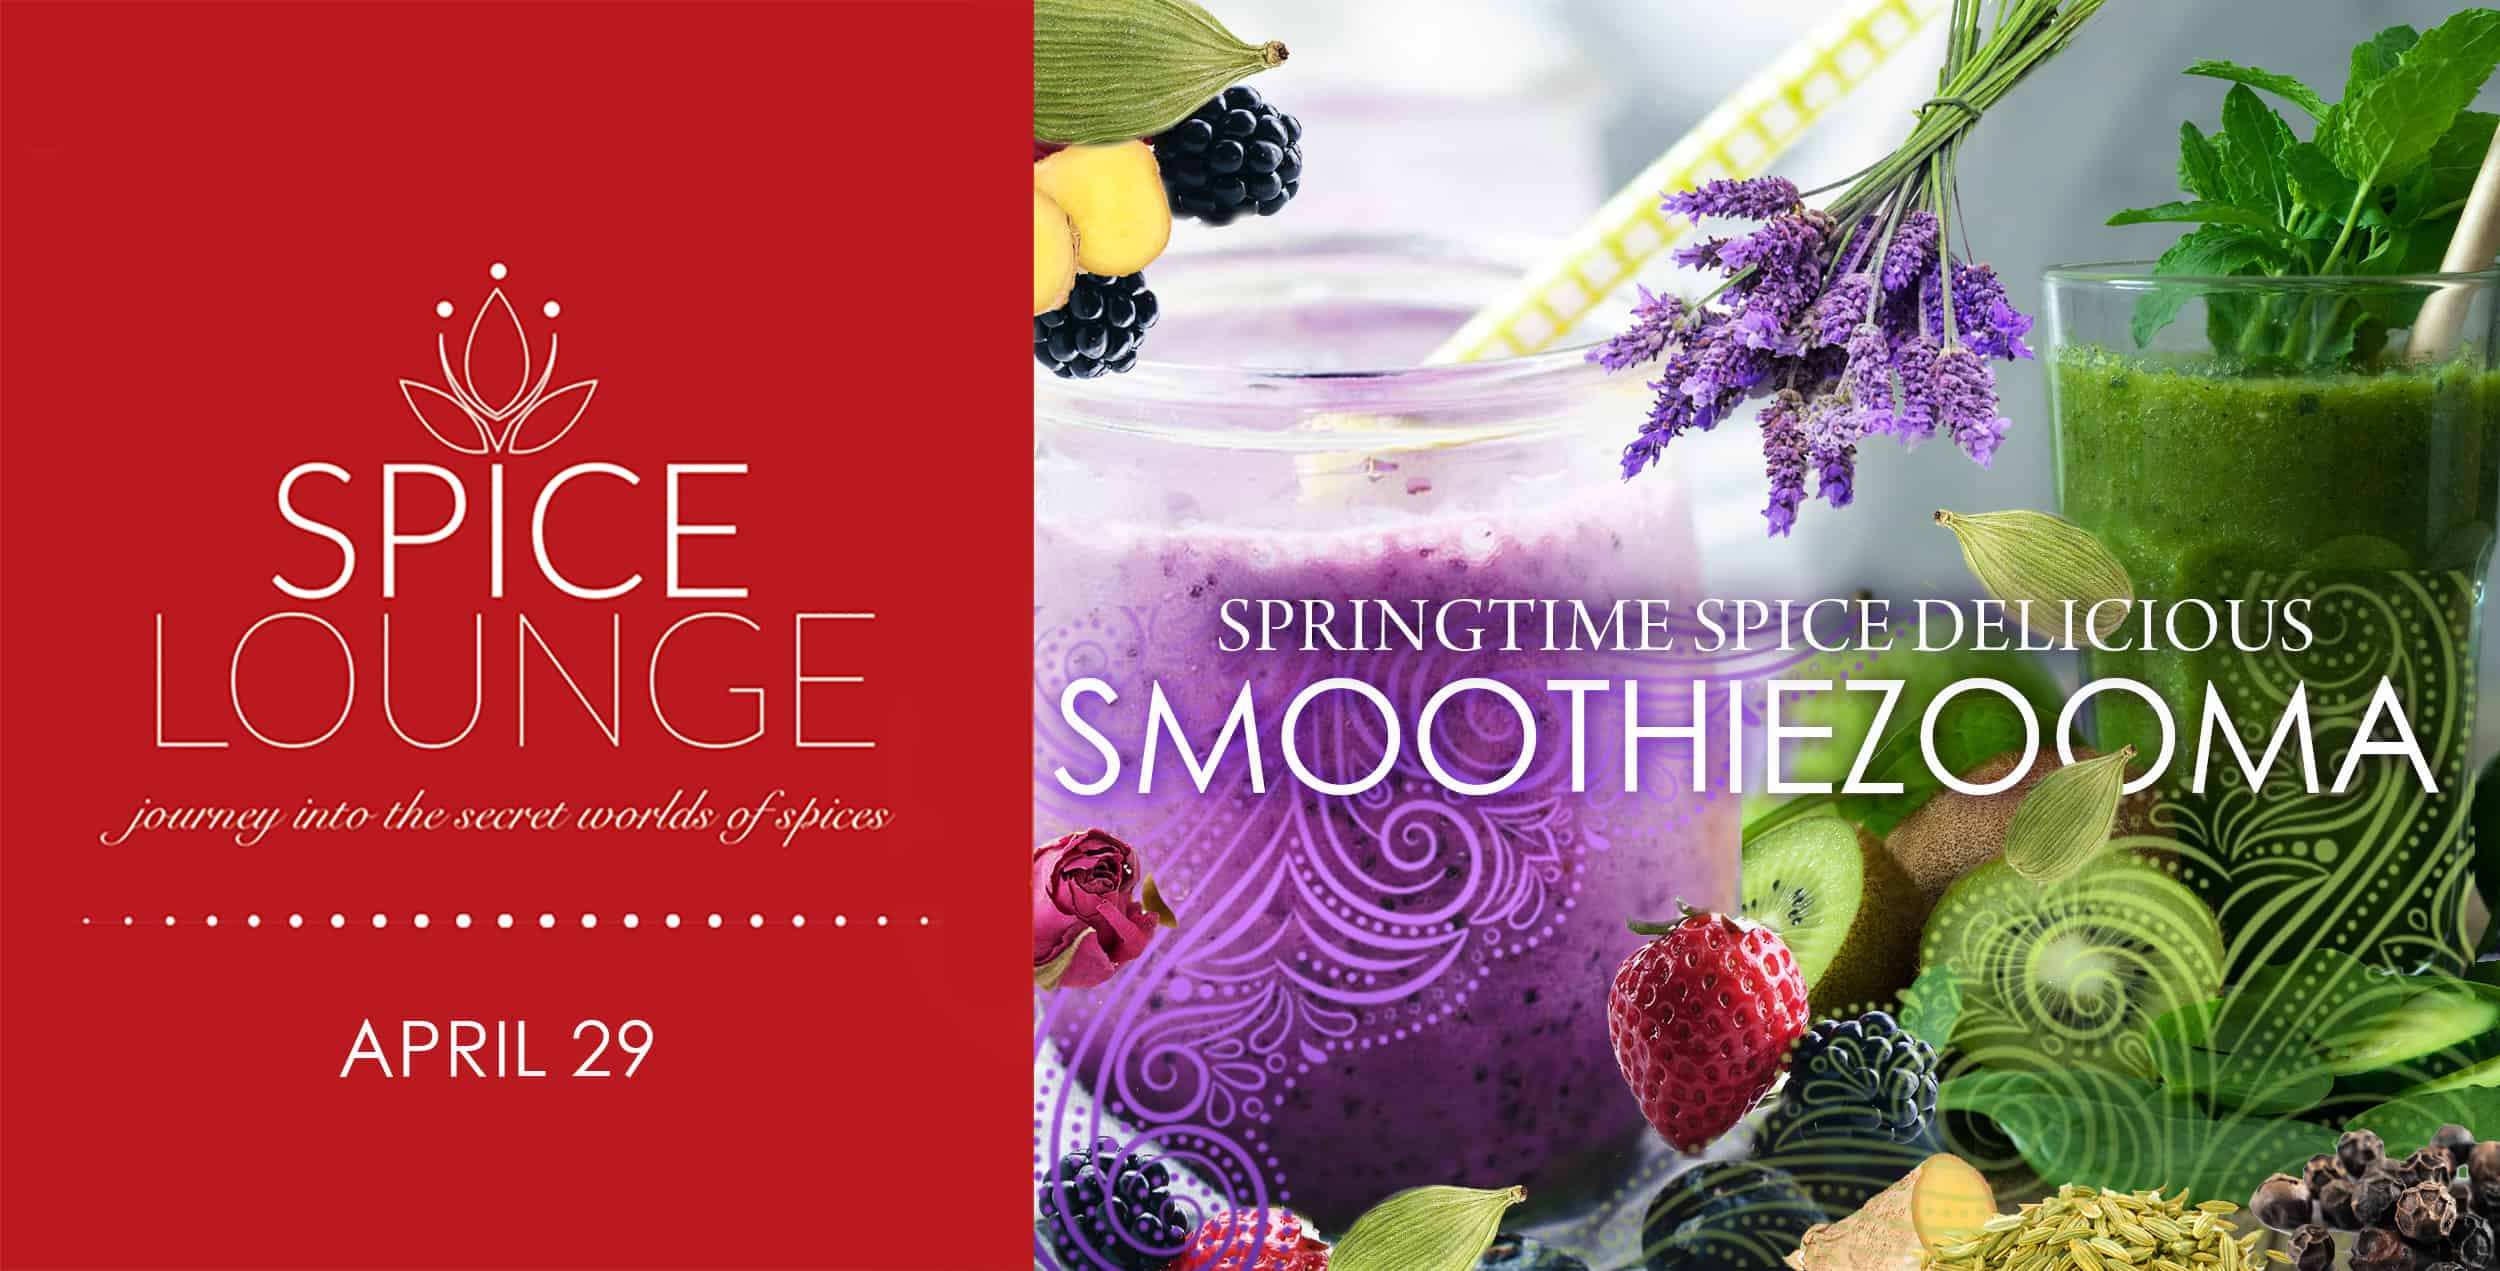 Spice Lounge SmoothieZooma - April 29 2021